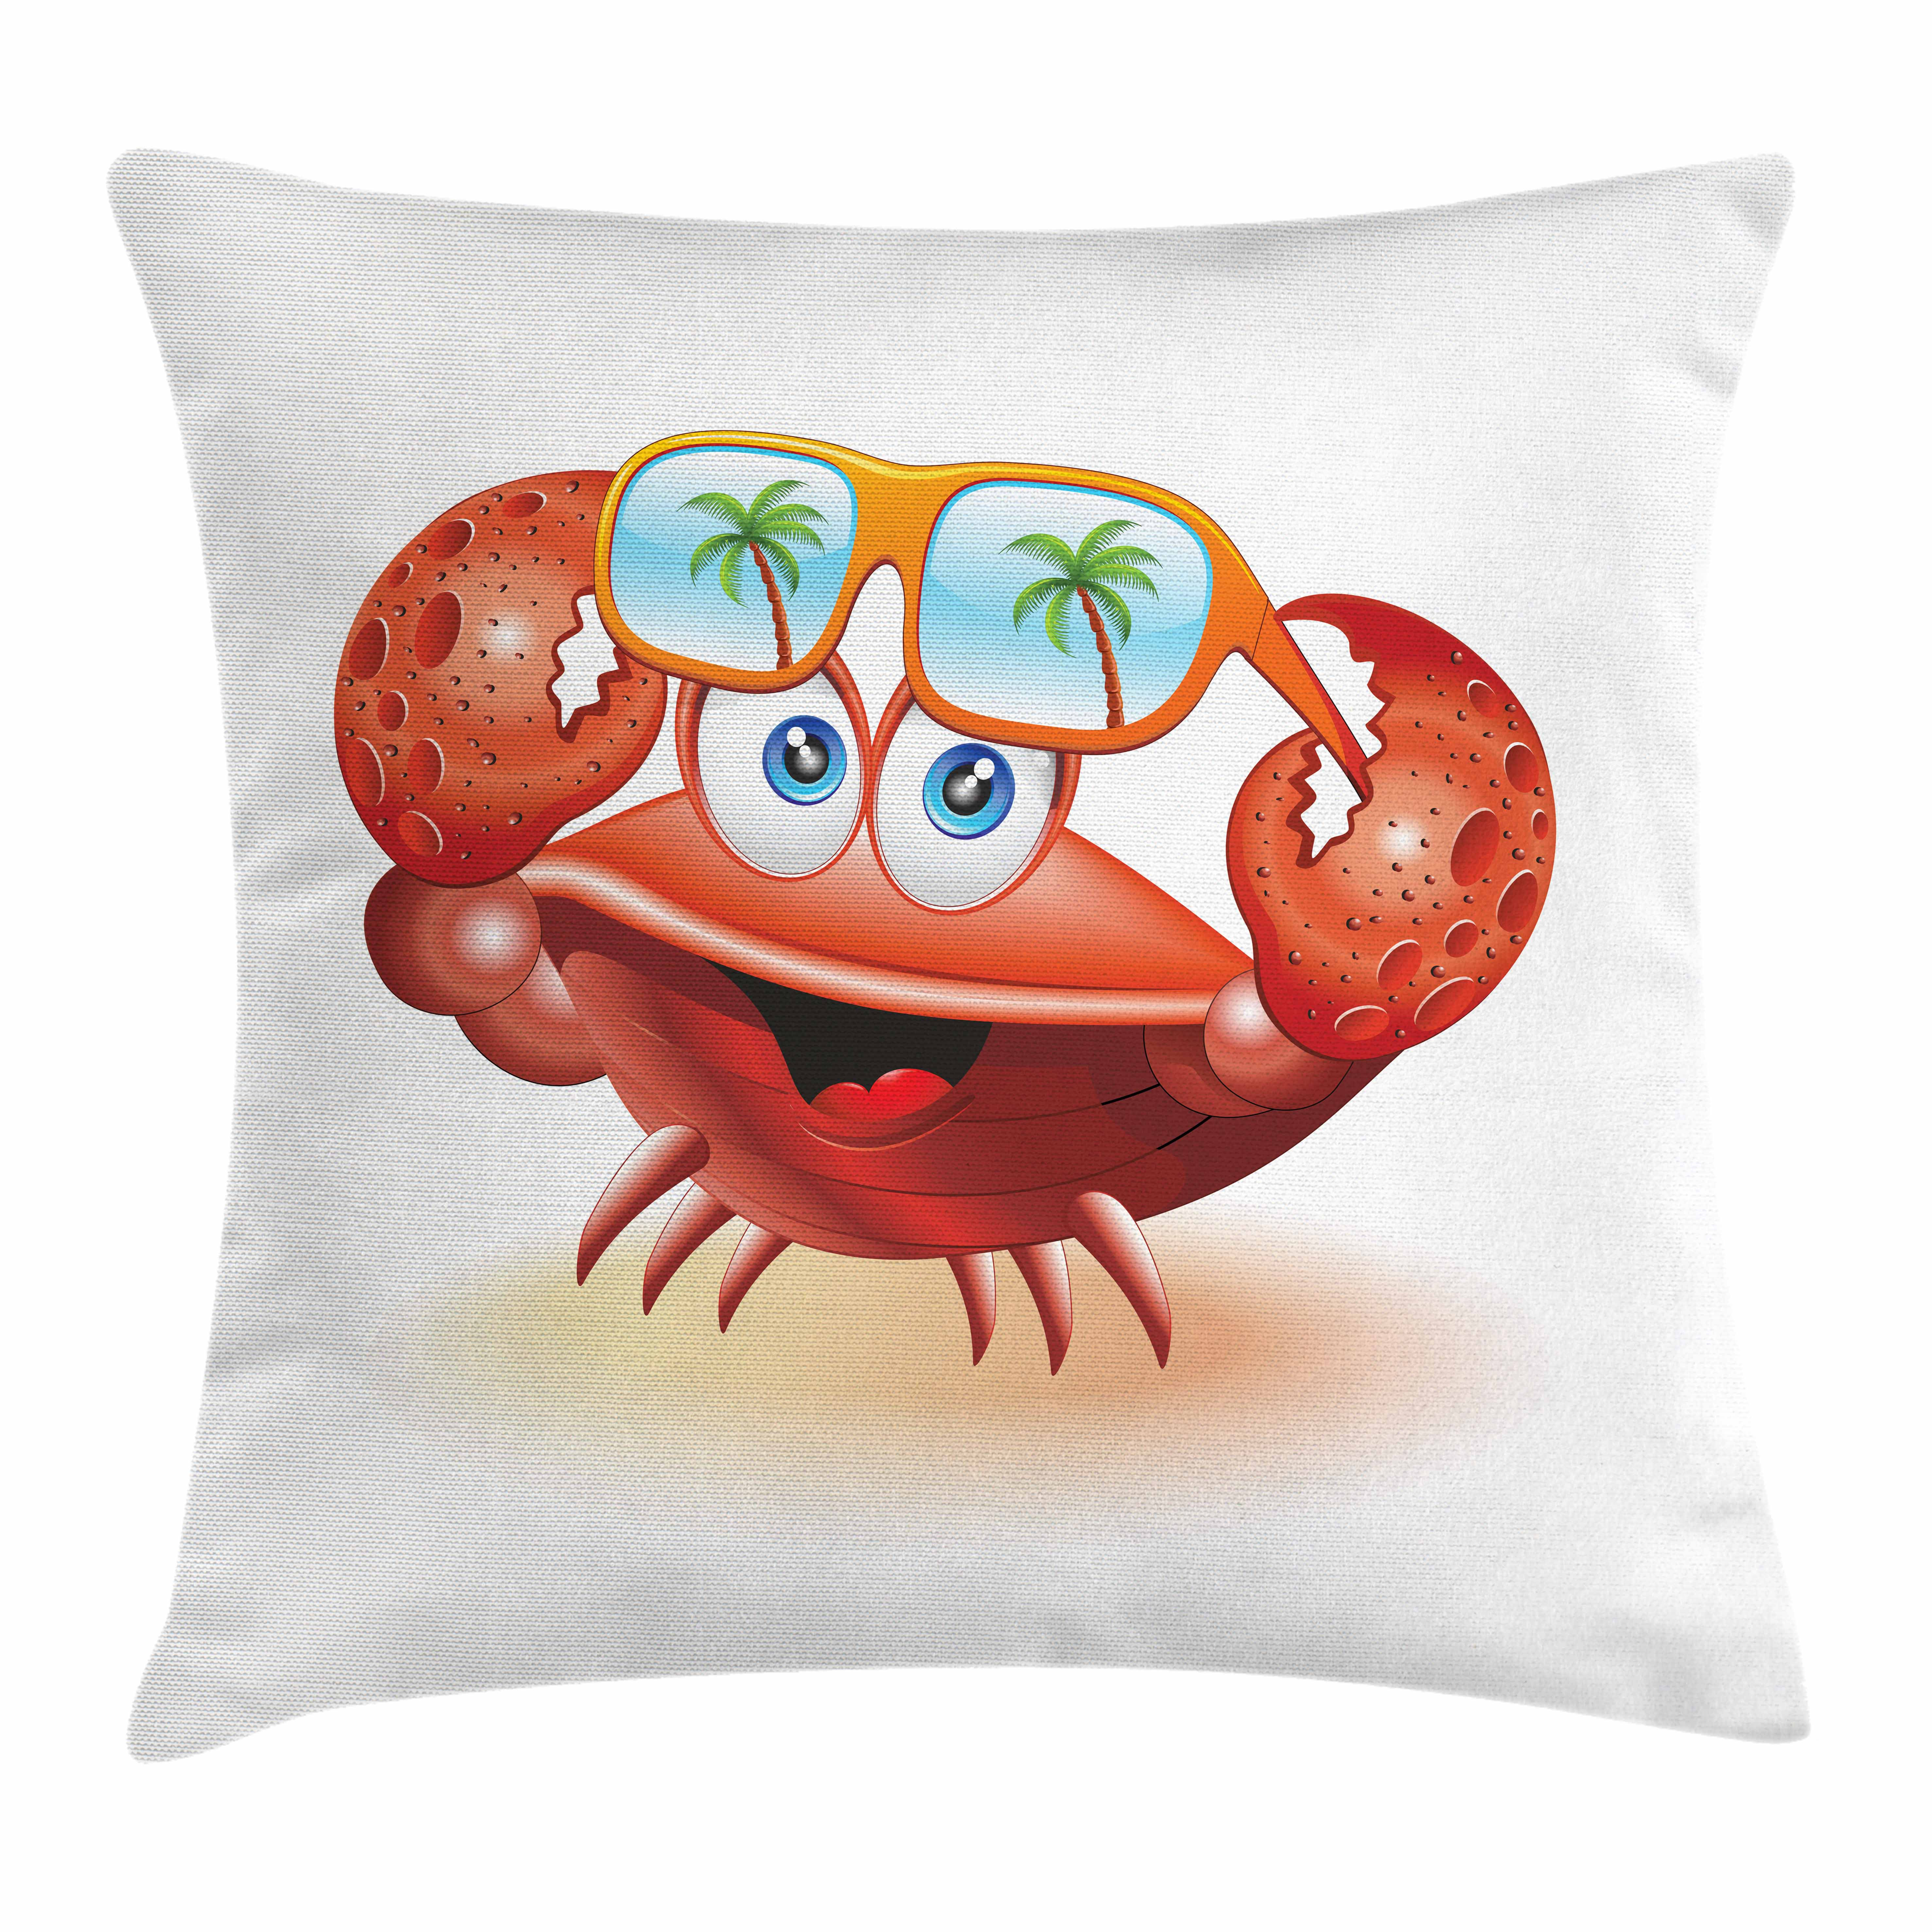 Crabs Throw Pillow Cushion Cover, Comical Oceanic Character Looking Under His Sunglasses with Palm Trees, Decorative Square Accent Pillow Case, 20 X 20 Inches, Vermilion Orange Blue, by Ambesonne